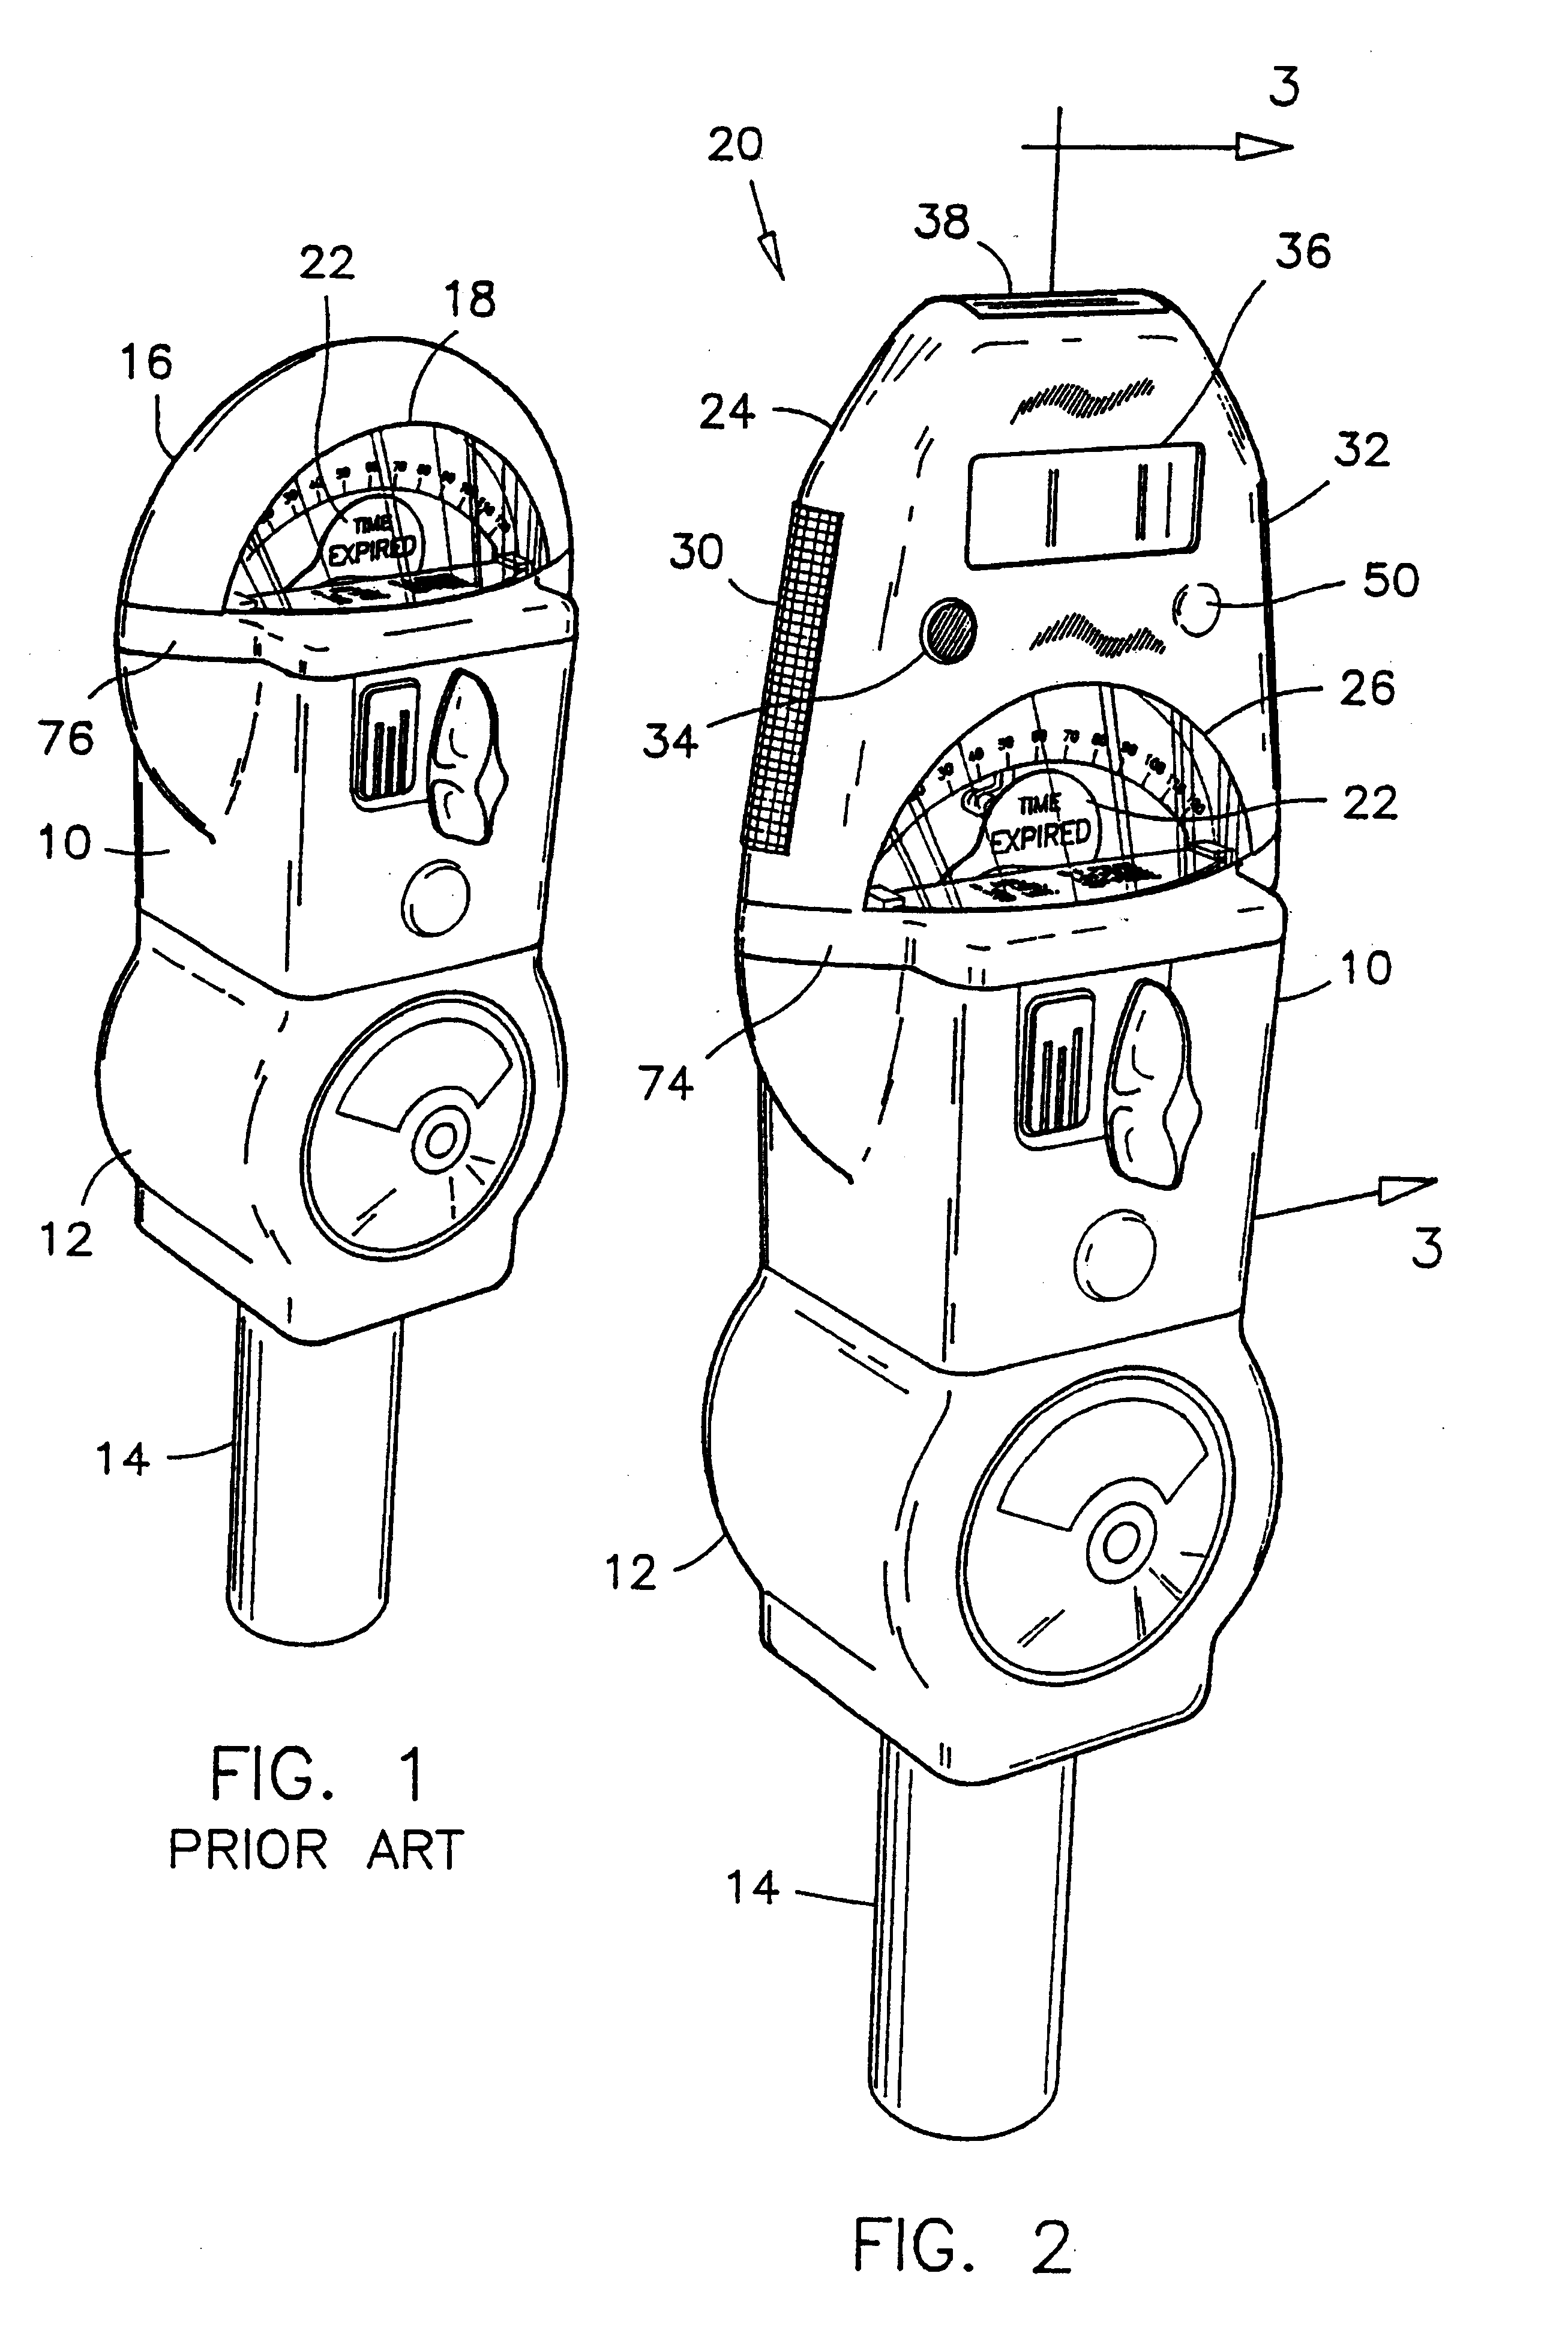 patent us6312152 - electronic module for conventional parking meter